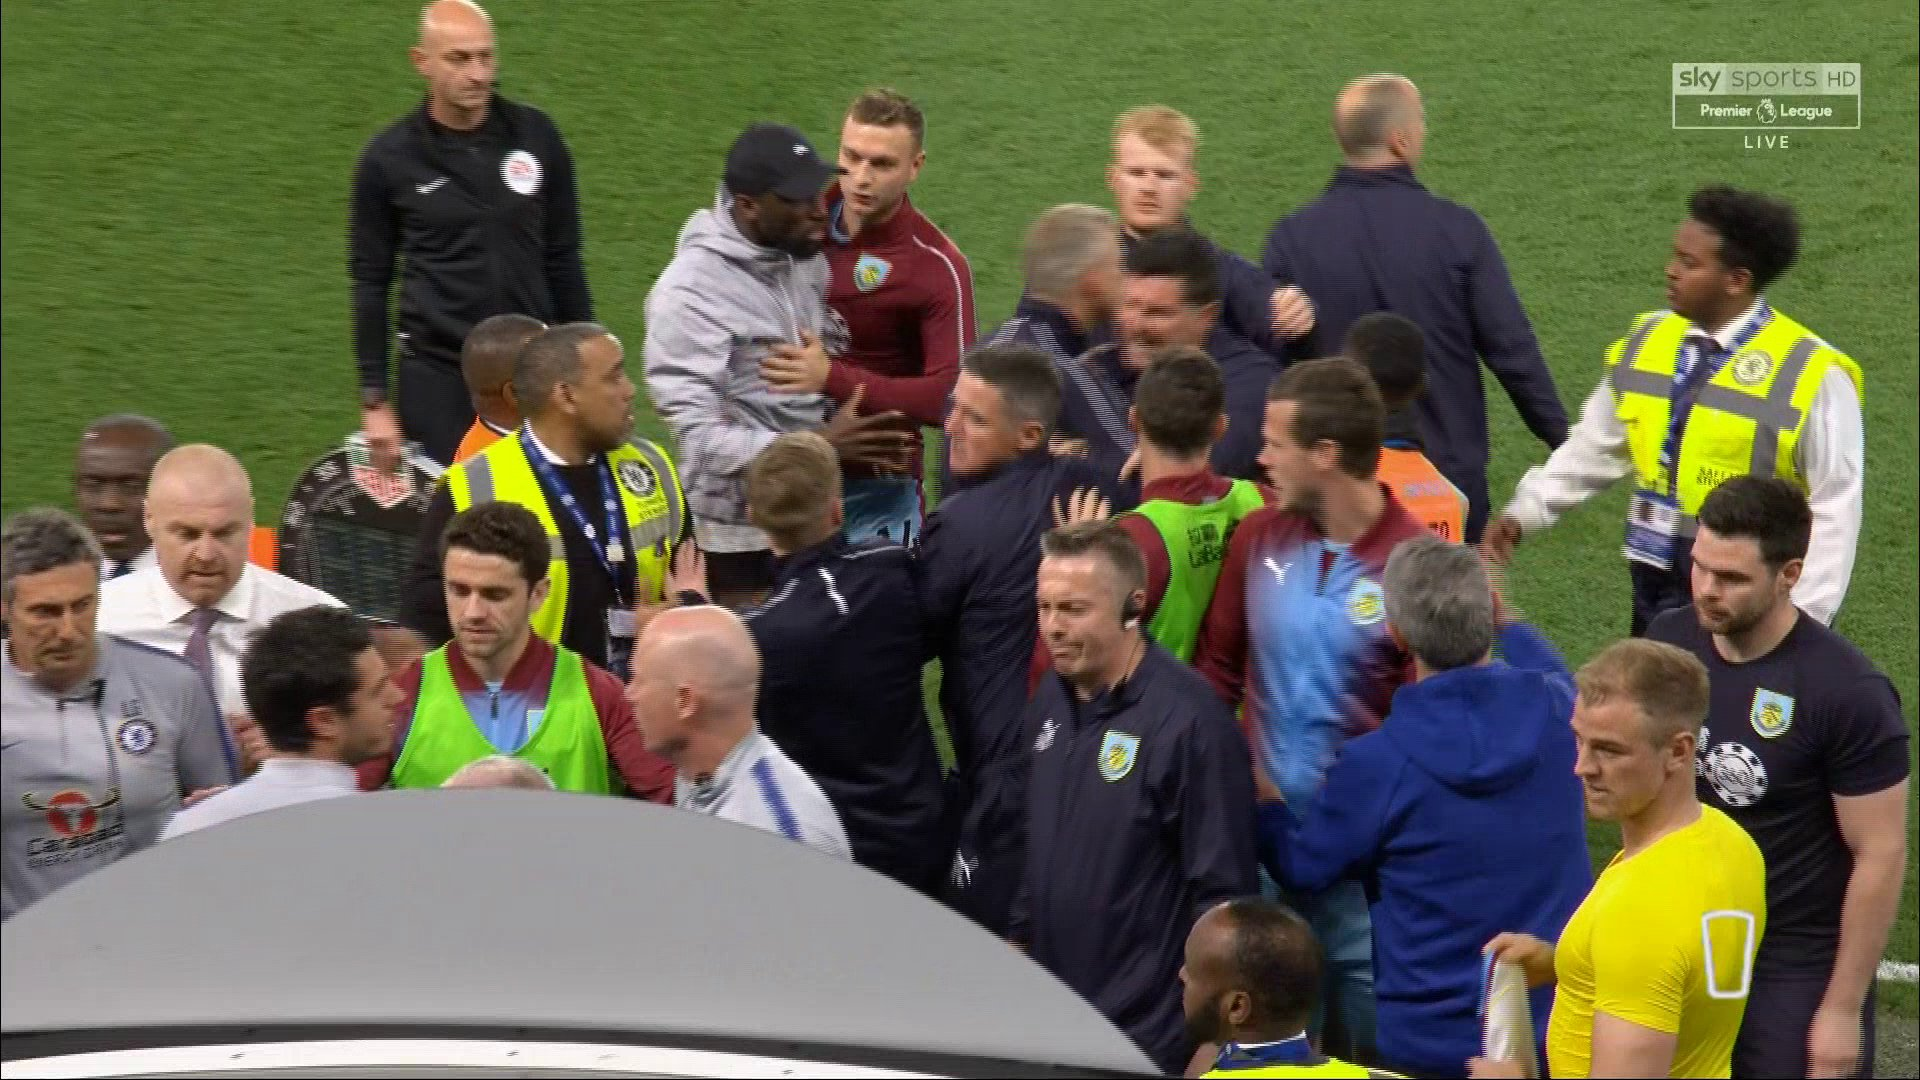 Maurizio Sarri insulted by Burnley bench to spark tunnel melee after Chelsea draw